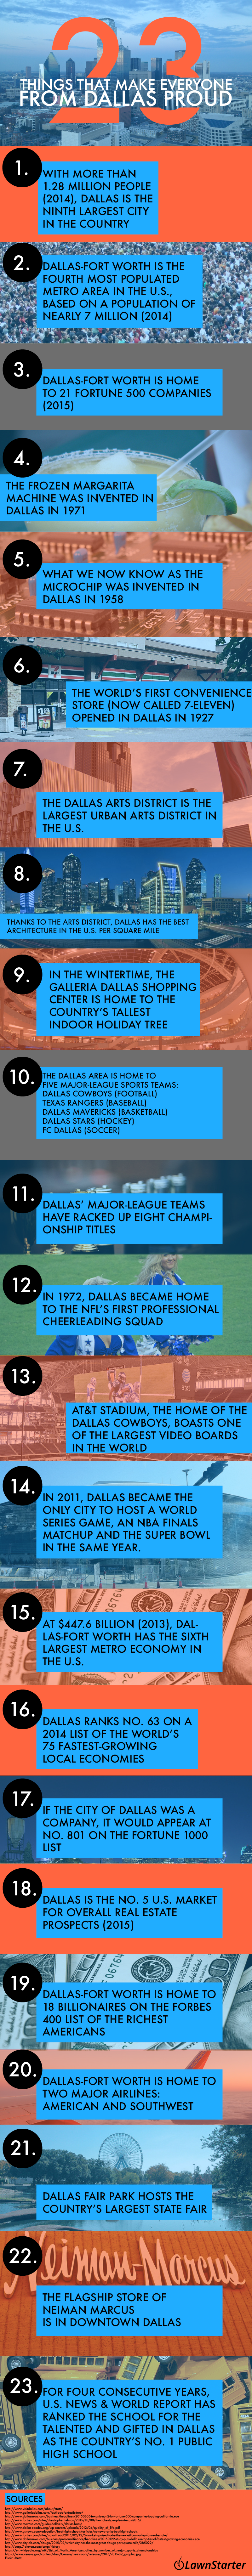 23 Things That Make Everyone from Dallas Proud